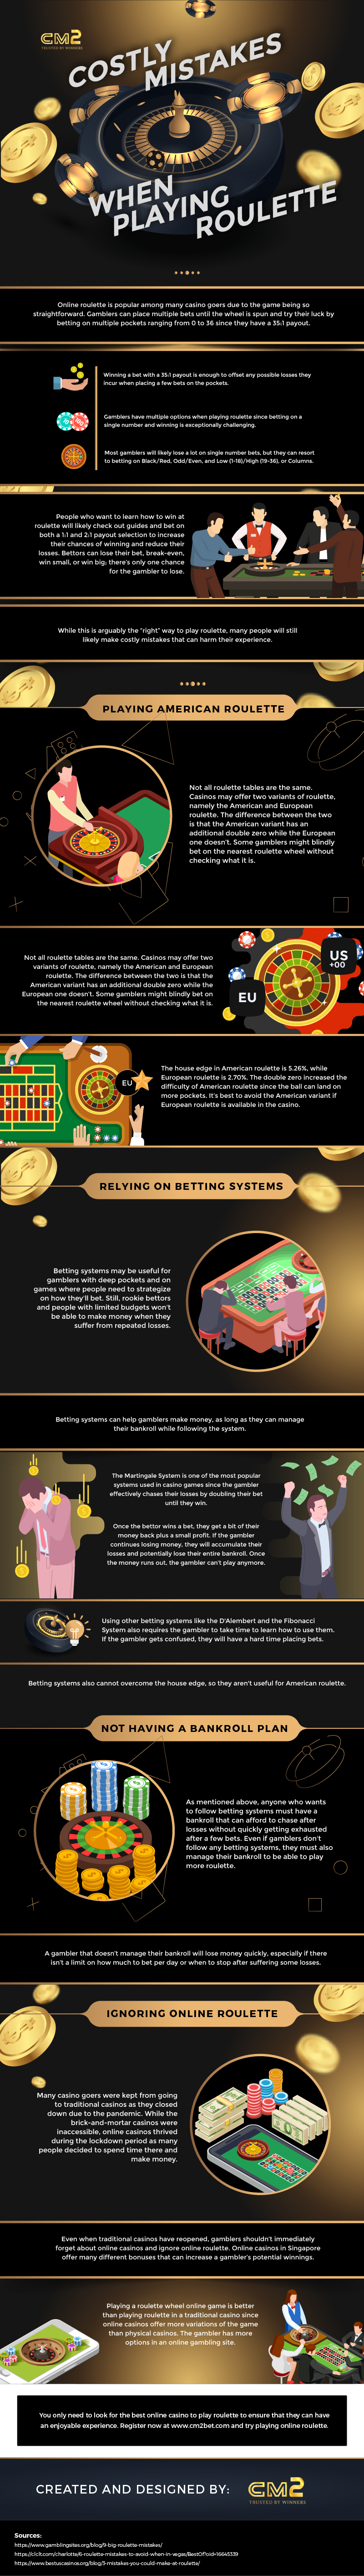 Costly Mistakes When Playing Roulette - Infographic